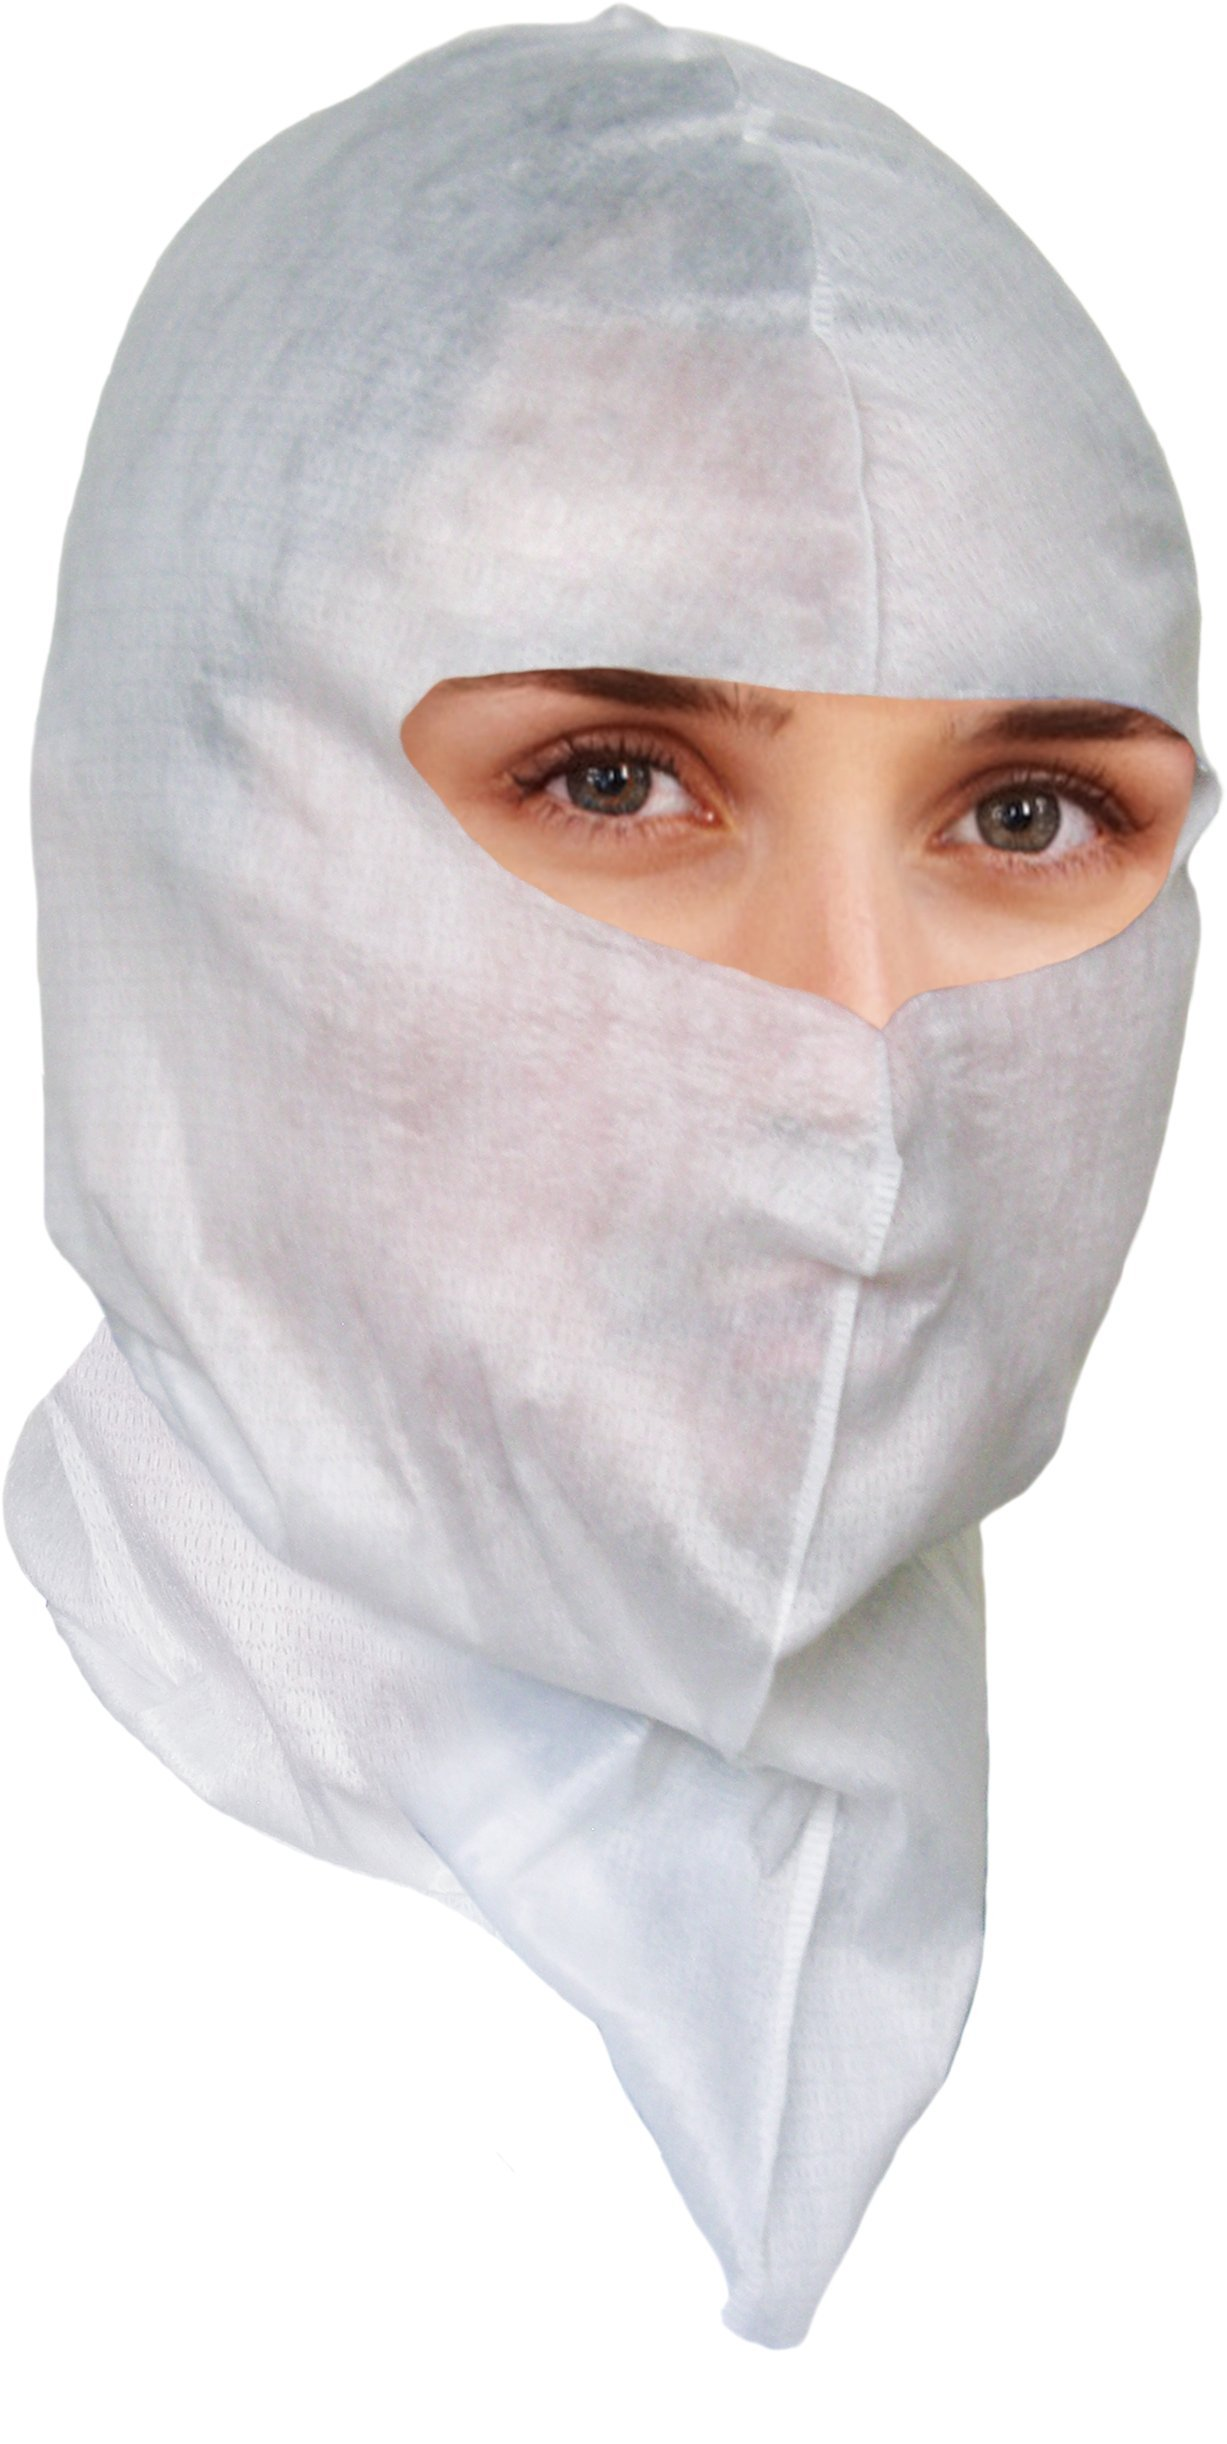 Soft-Stretch Disposable Hood, Headcover for Cleanroom or Healthcare Workers (more coverage than wearing a bouffant cap, a mask and a beard cover), $0.46 Ea, 200 Per Pack